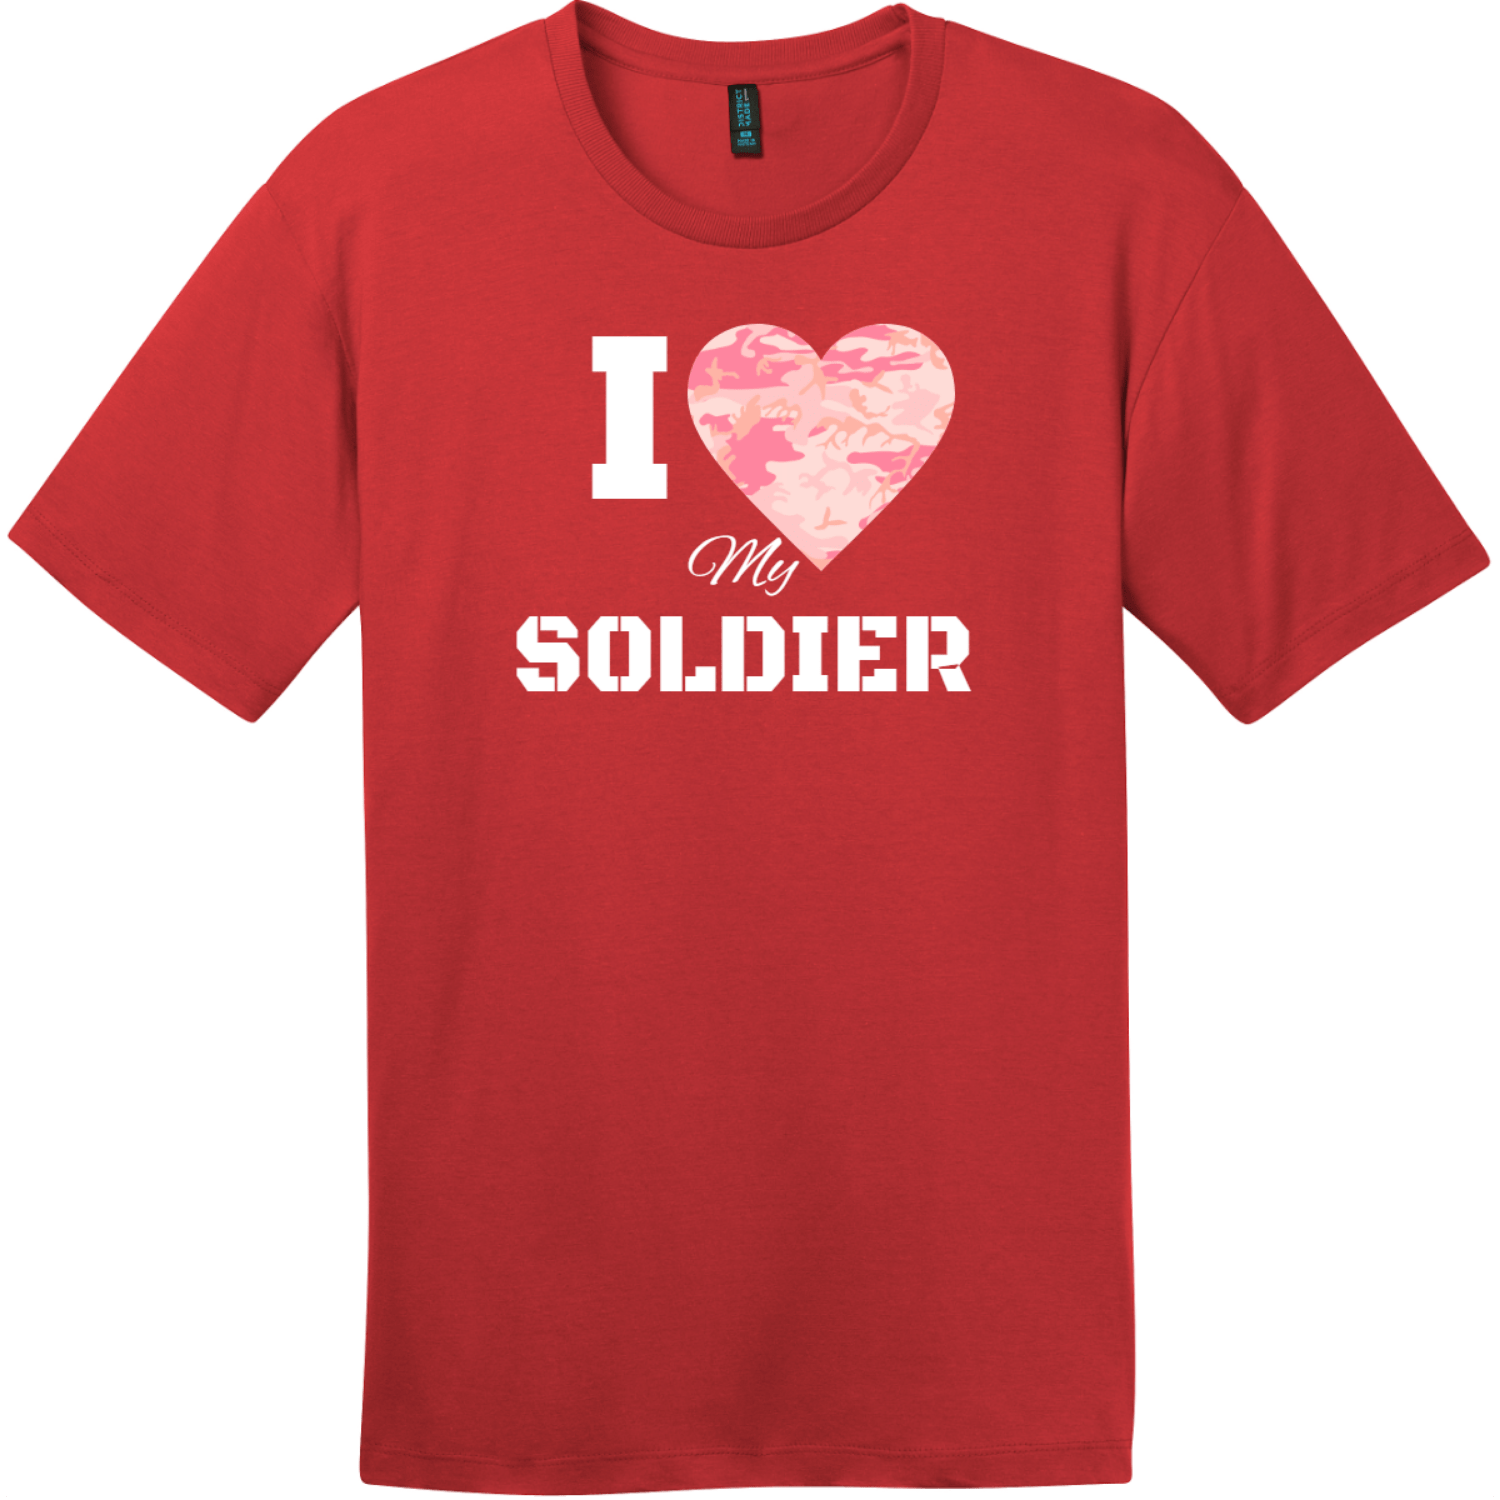 I Love My Soldier Pink Camo Heart T-Shirt Classic Red District Perfect Weight Tee DT104